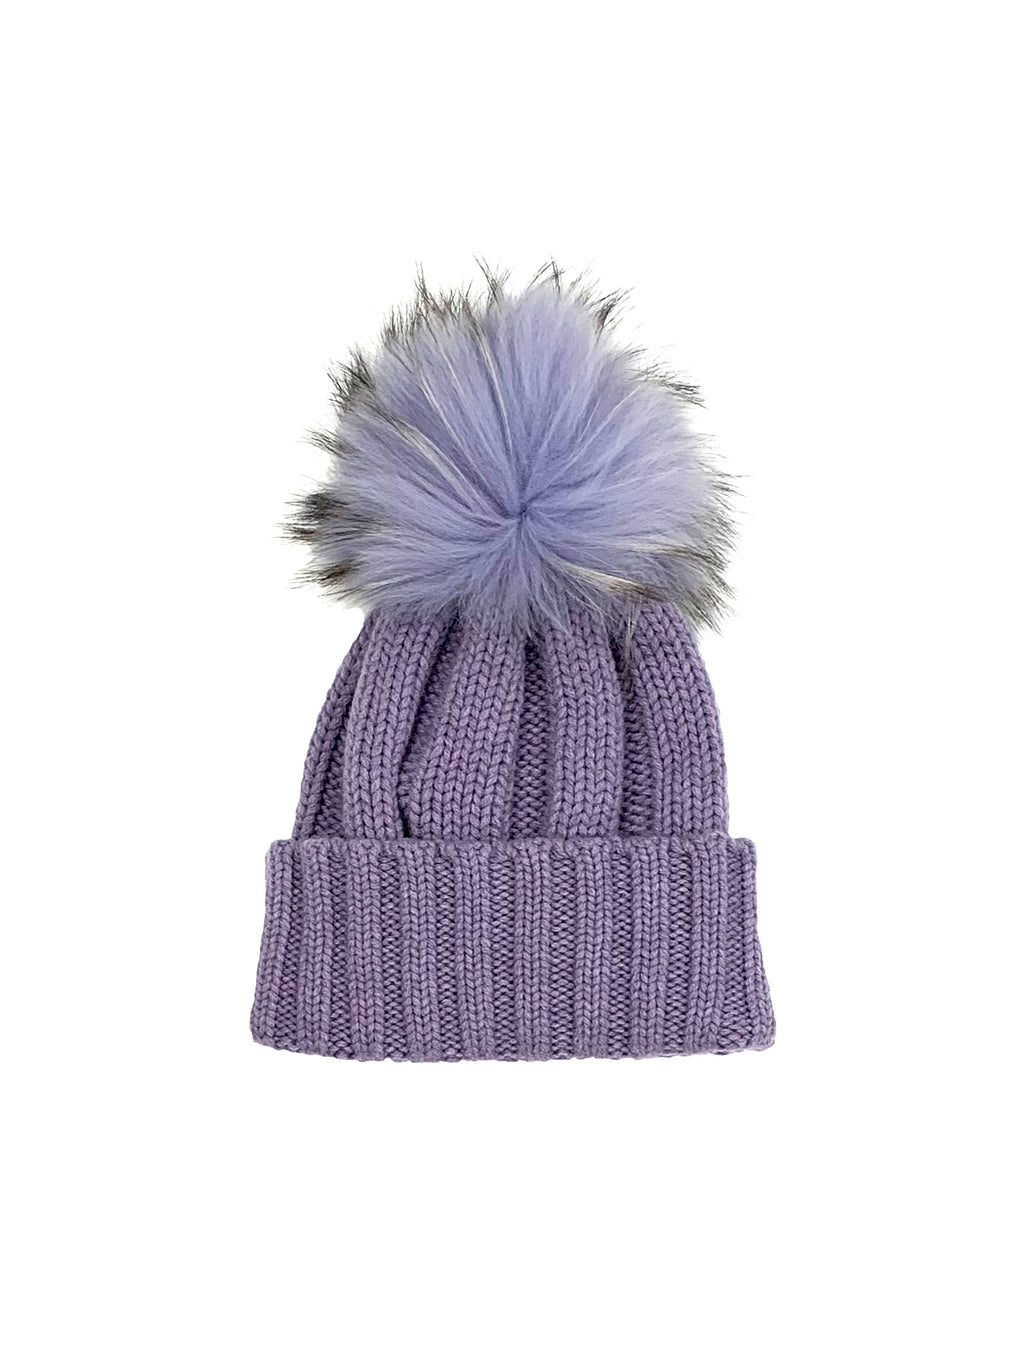 Raffaello Bettini Ribbed Beanie with Fox Pom Pom